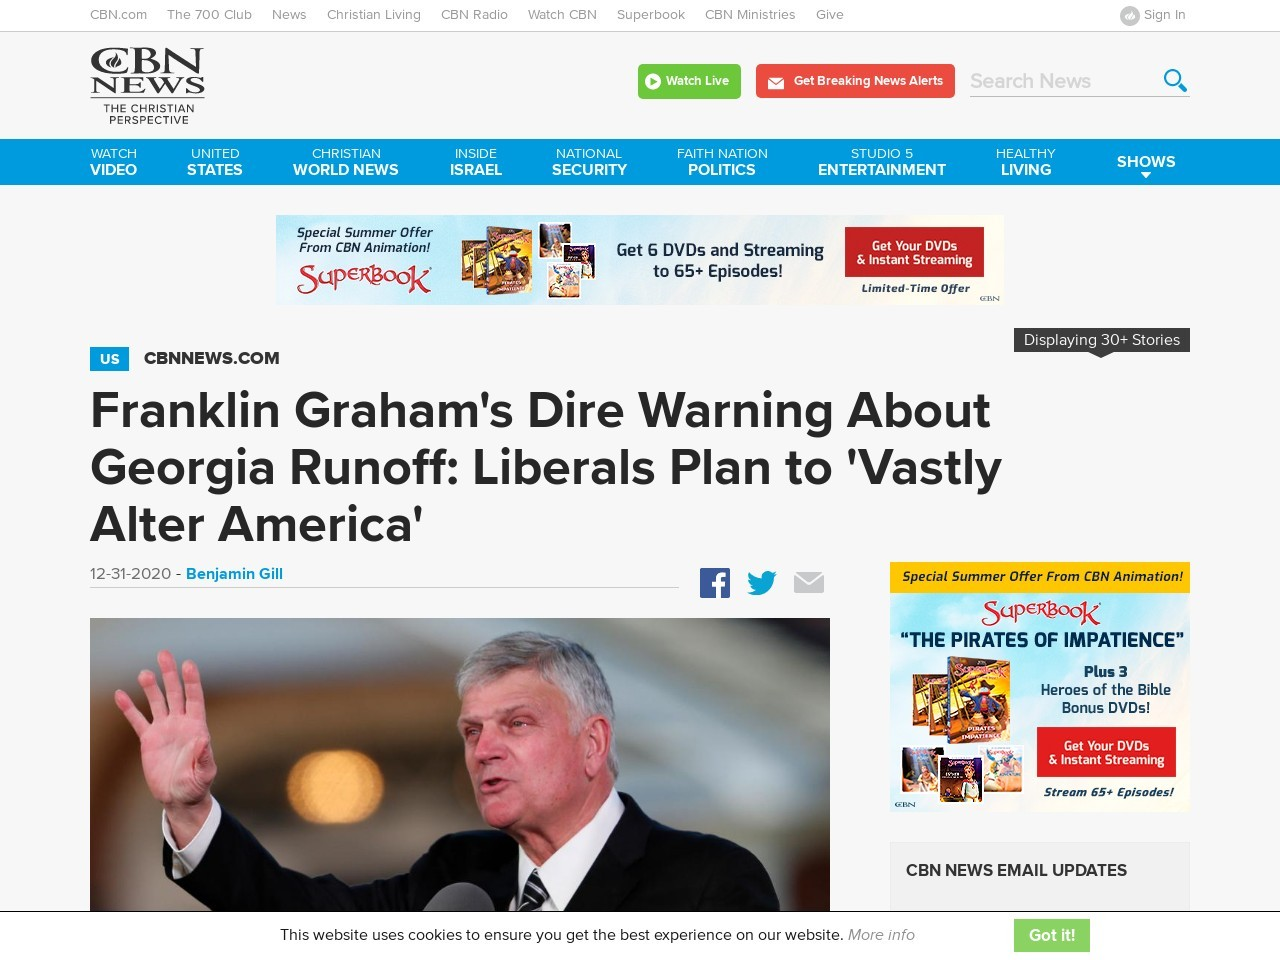 Franklin Graham's Dire Warning About Georgia Runoff: Liberals Plan to 'Vastly Alter America'